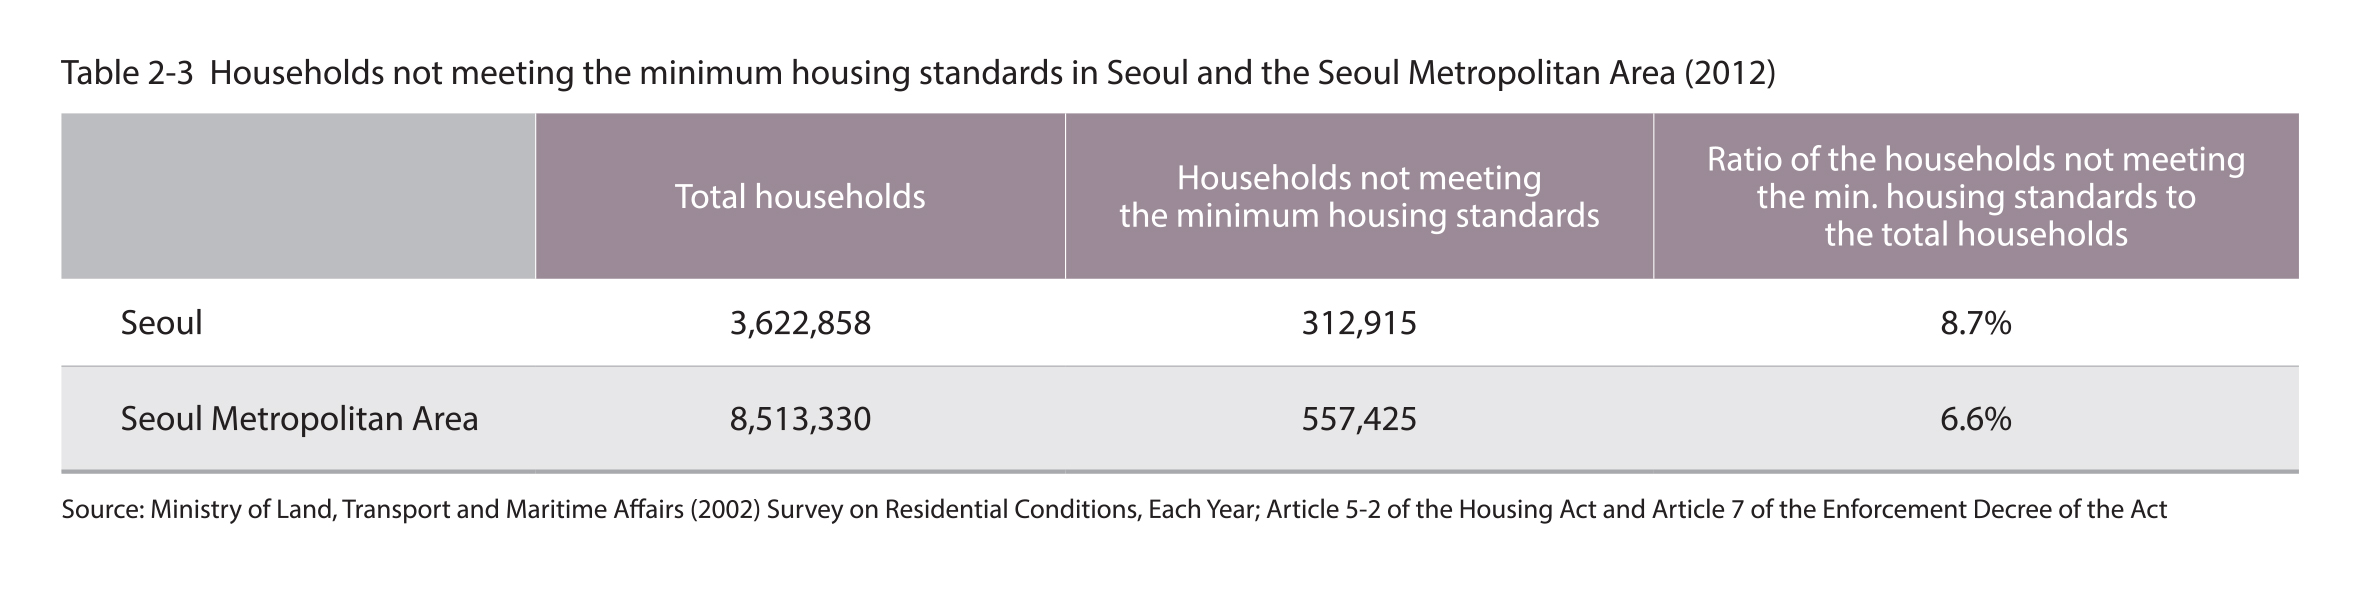 Households not meeting the minimum housing standards in Seoul and the Seoul Metropolitan Area (2012)